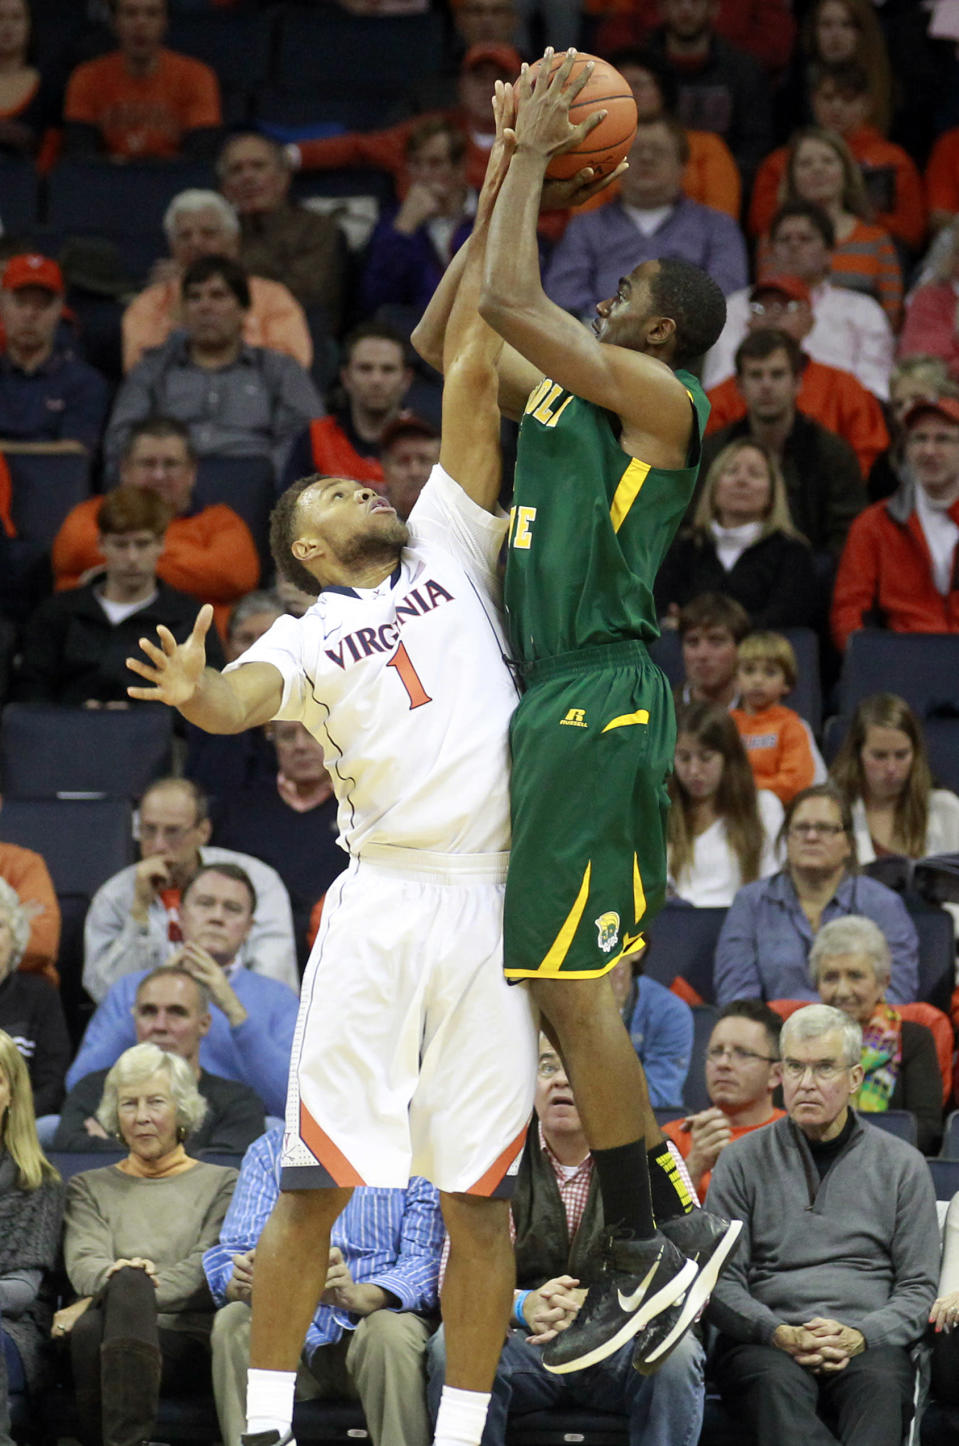 Norfolk State guard D'Shon Taylor (4) shoots over Virginia guard Justin Anderson (1) during an NCAA college basketball game, Sunday Nov. 16, 2014 in Charlottesville, Va. (AP Photo/Andrew Shurtleff)